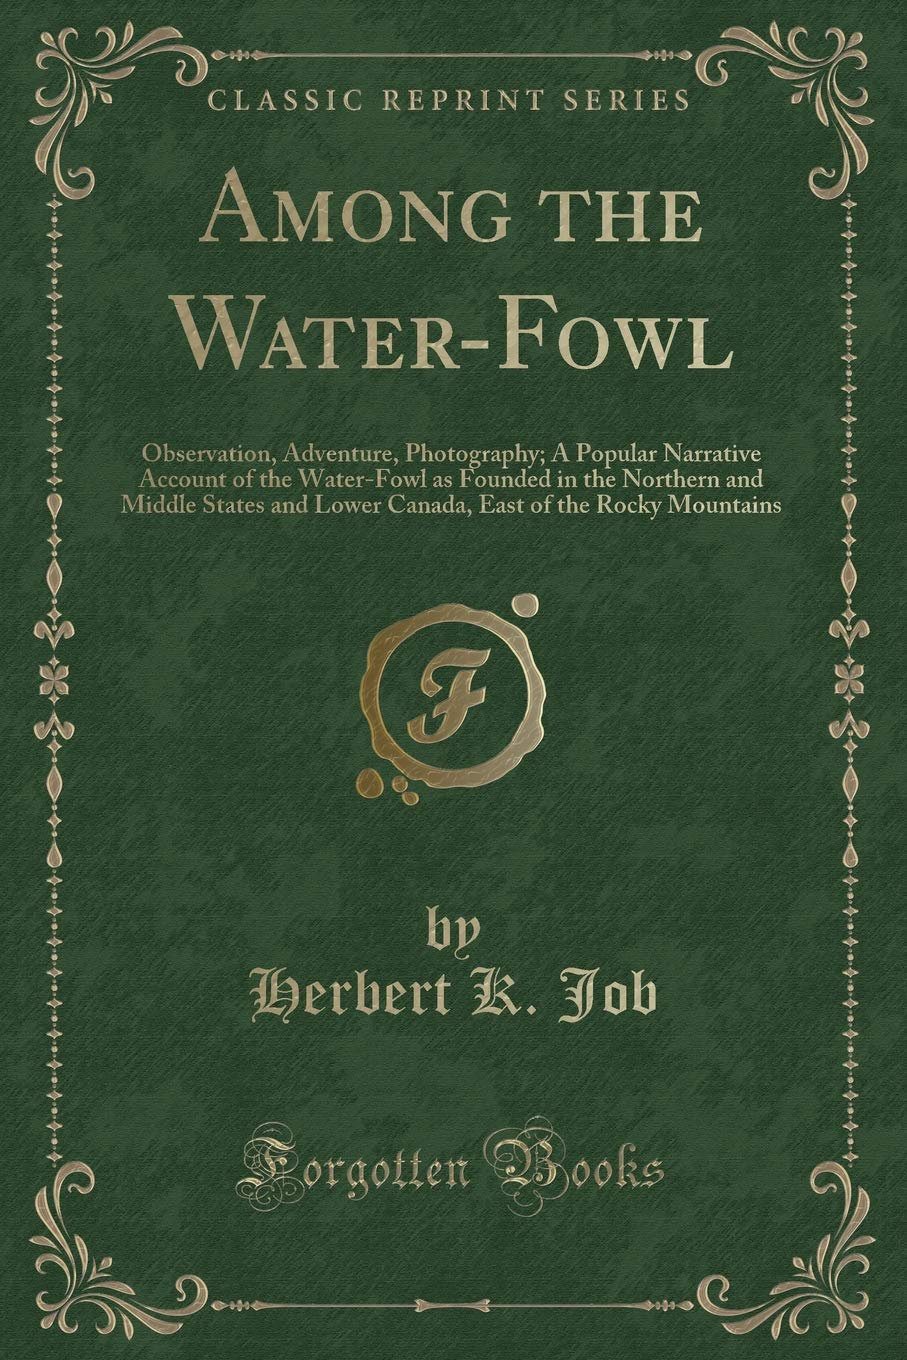 Download Among the Water-Fowl: Observation, Adventure, Photography; A Popular Narrative Account of the Water-Fowl as Founded in the Northern and Middle States ... East of the Rocky Mountains (Classic Reprint) PDF